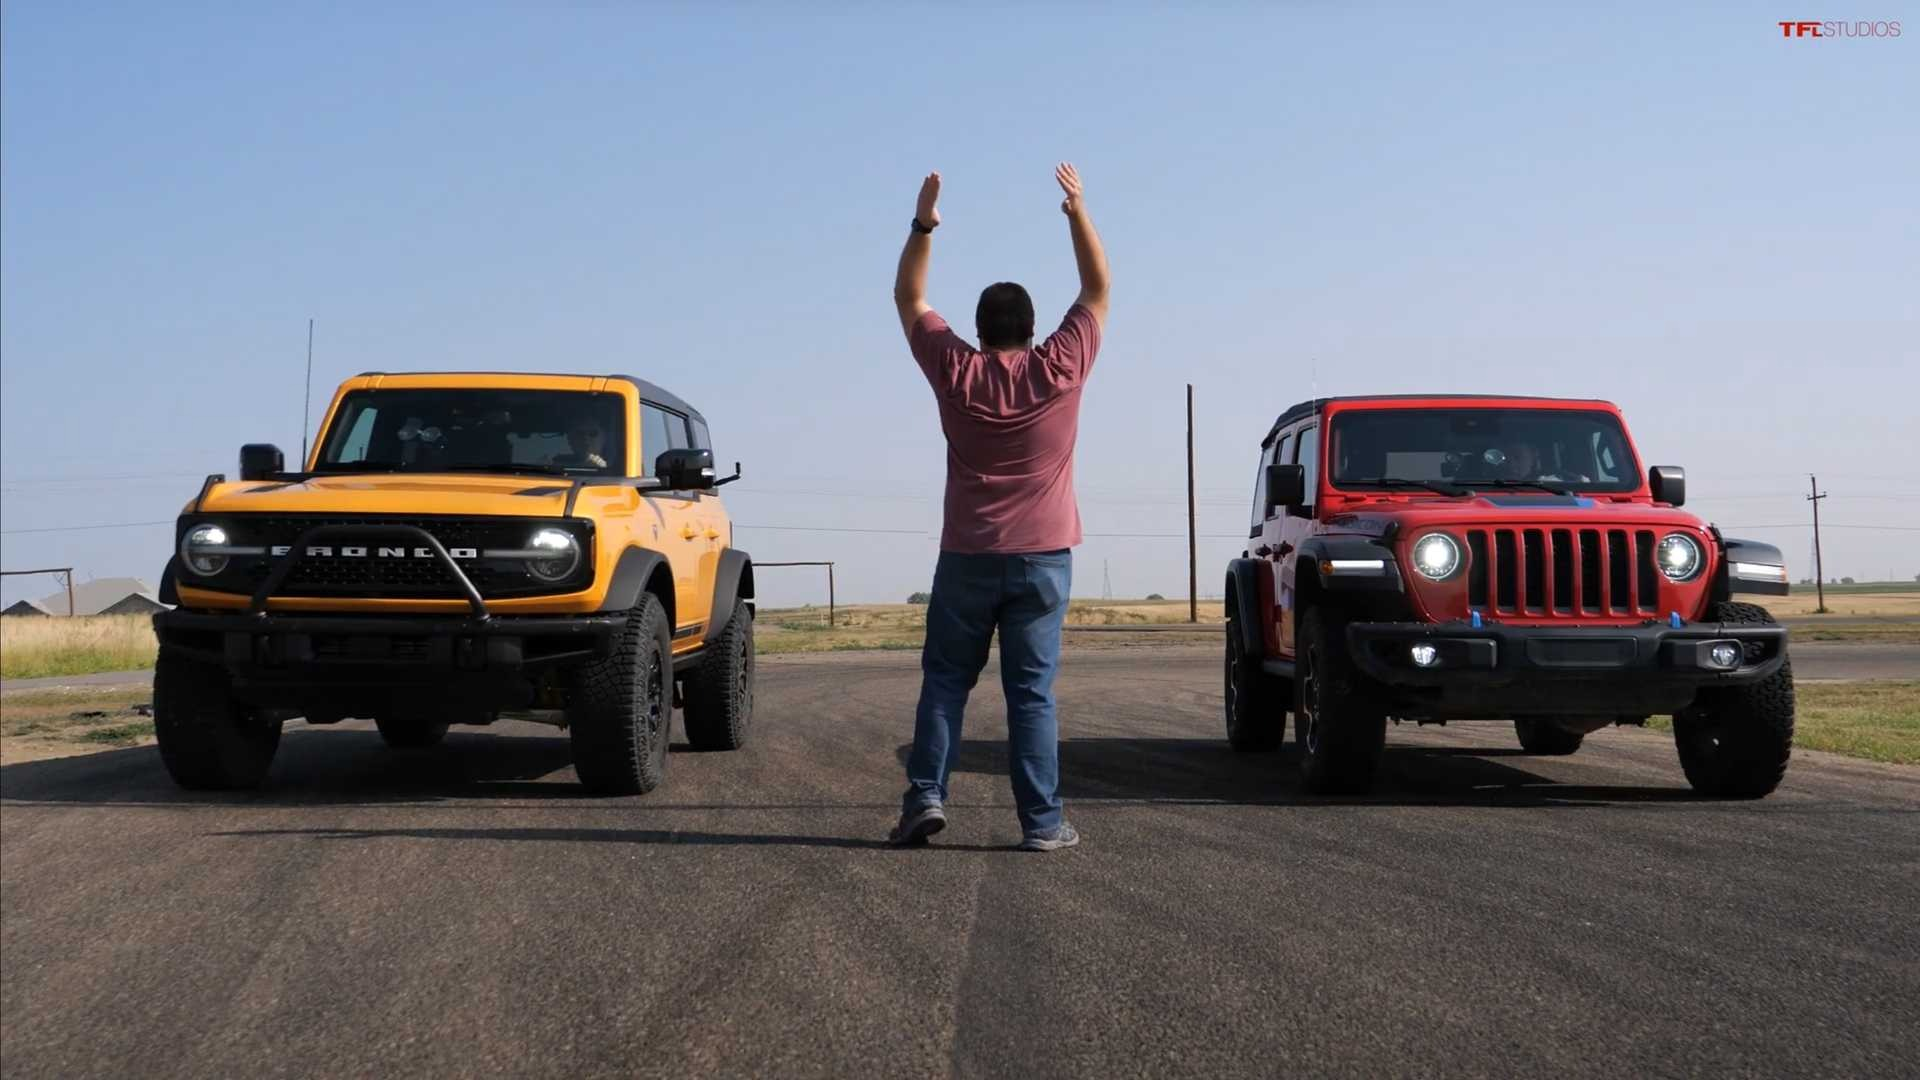 The fight between two mighty off-roading rivals, the Jeep Wrangler and the Ford Bronco, goes much farther than just the showrooms. Neither is cut out for drag racing, but the TFLcar team still put them onto a quarter-mile track for comparison.